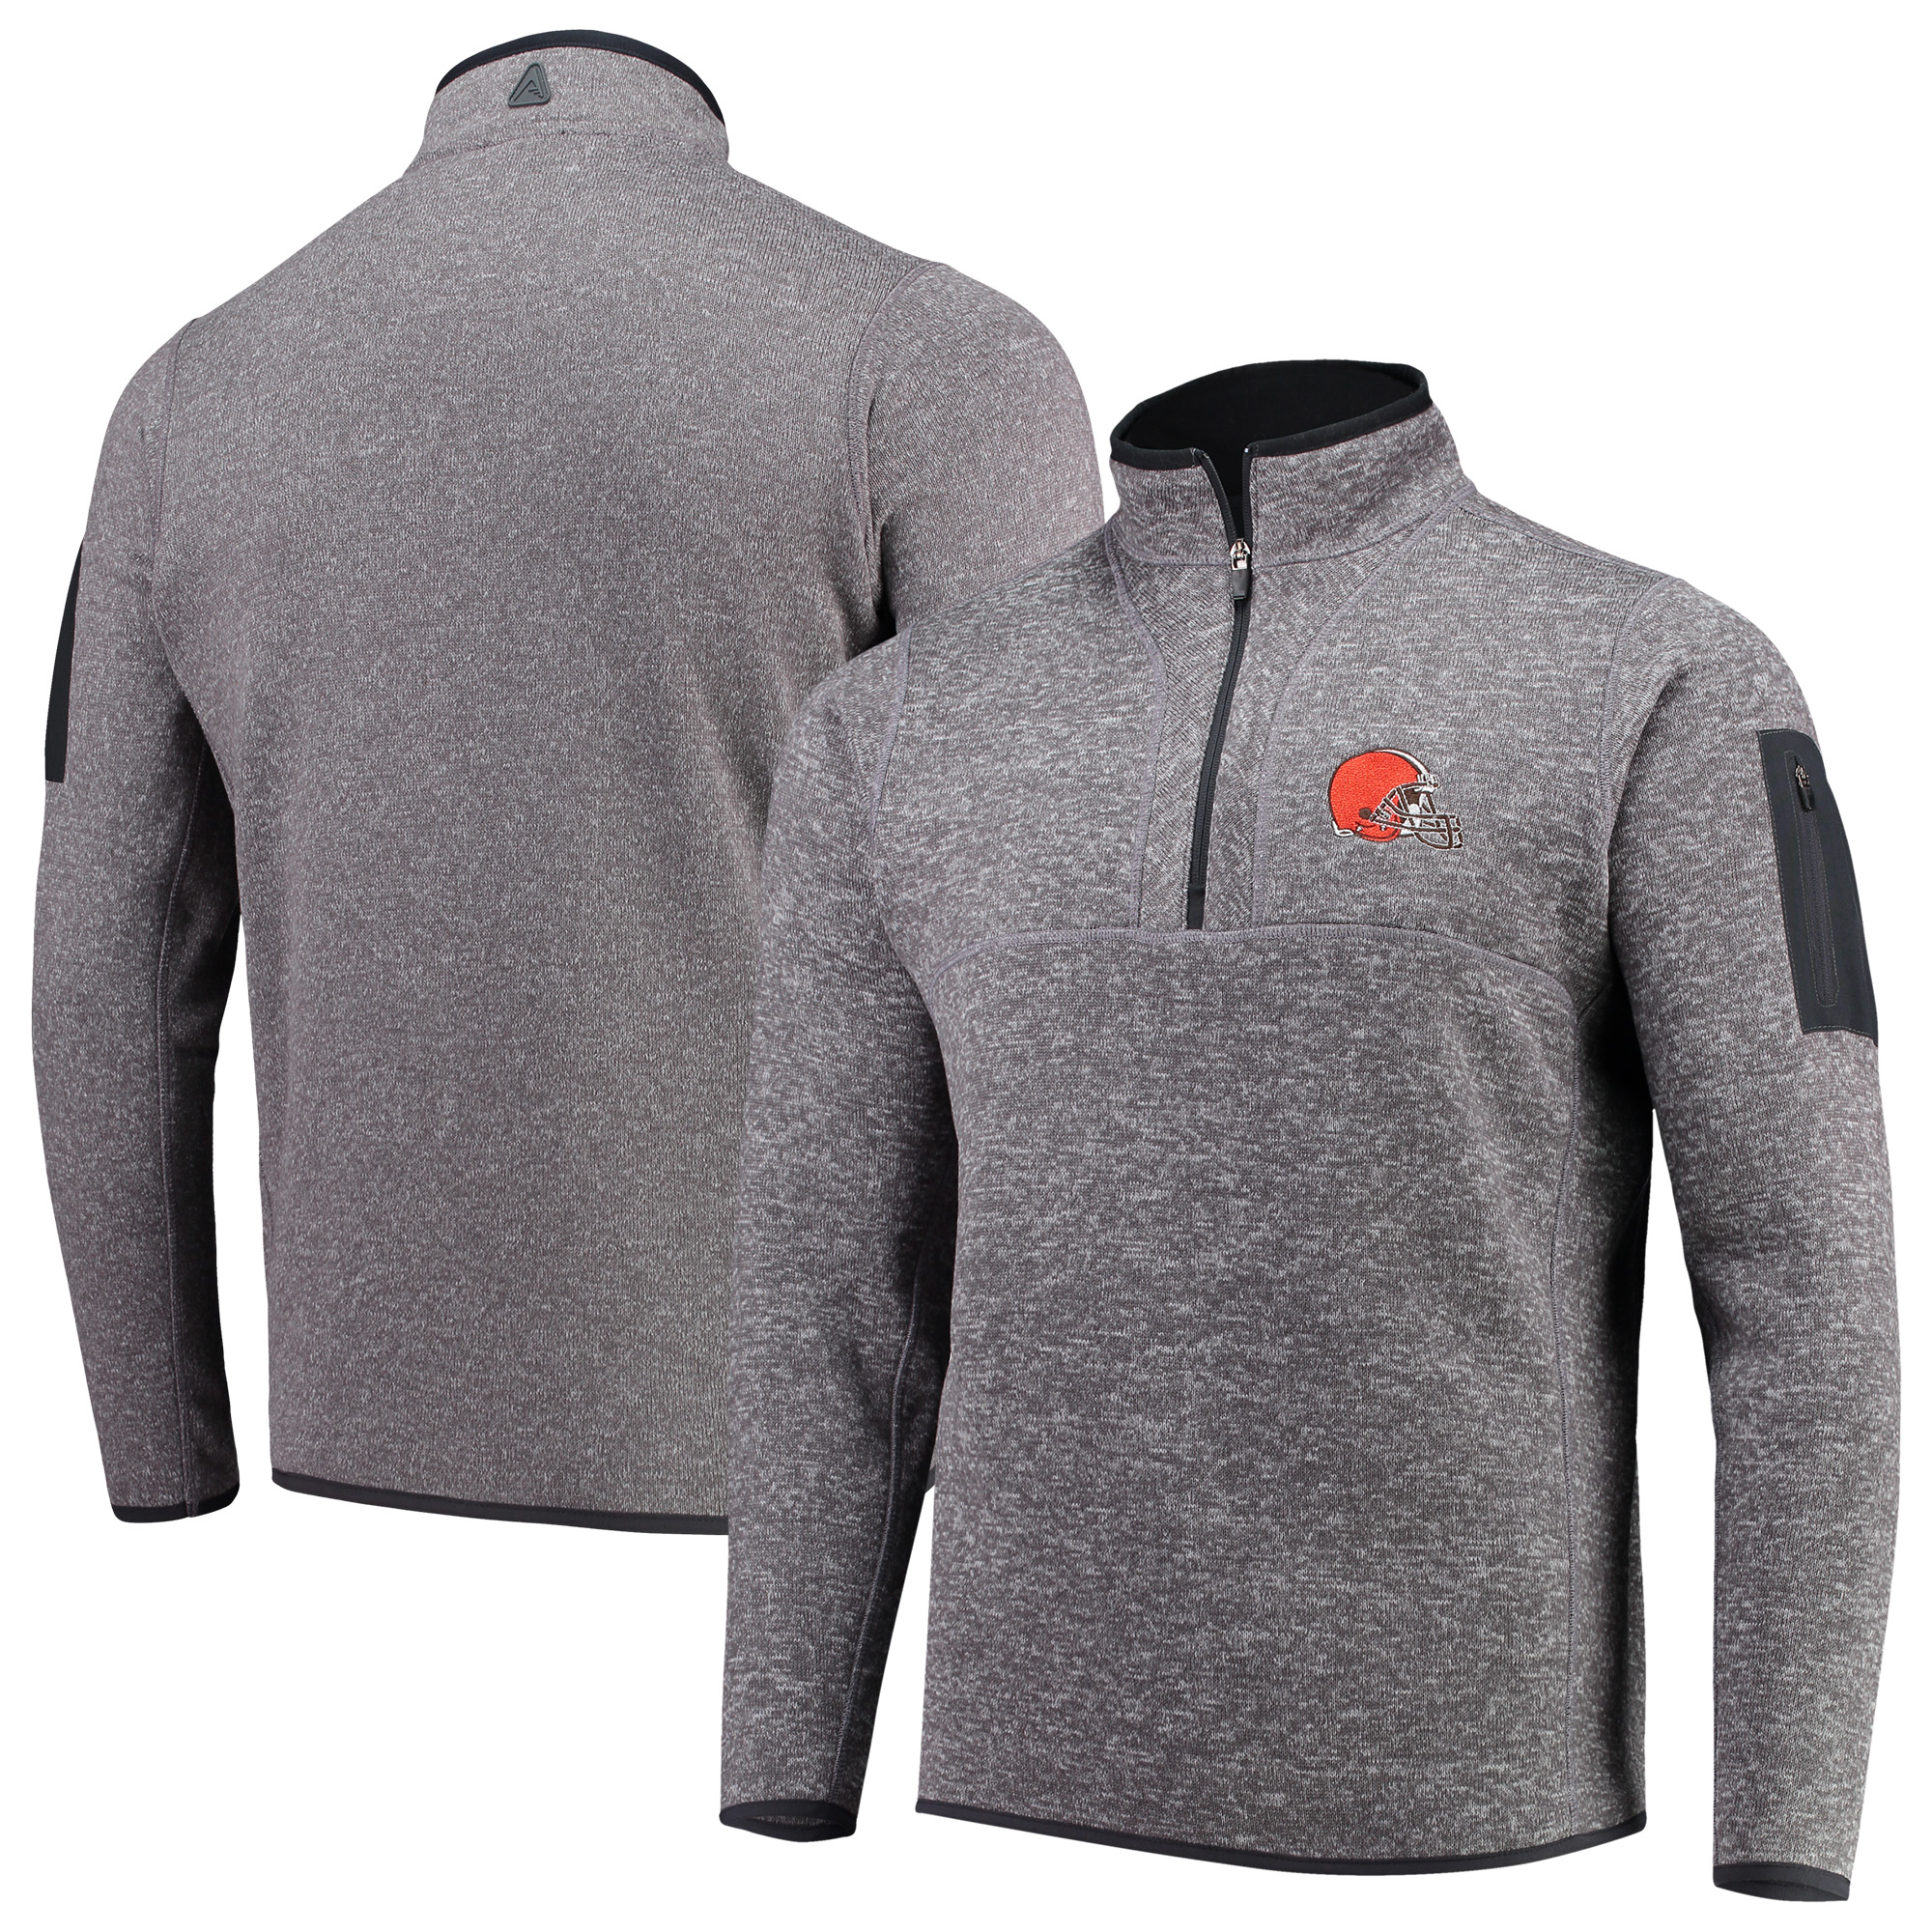 Cleveland Browns Antigua Fortune Quarter-Zip Pullover Jacket - Charcoal